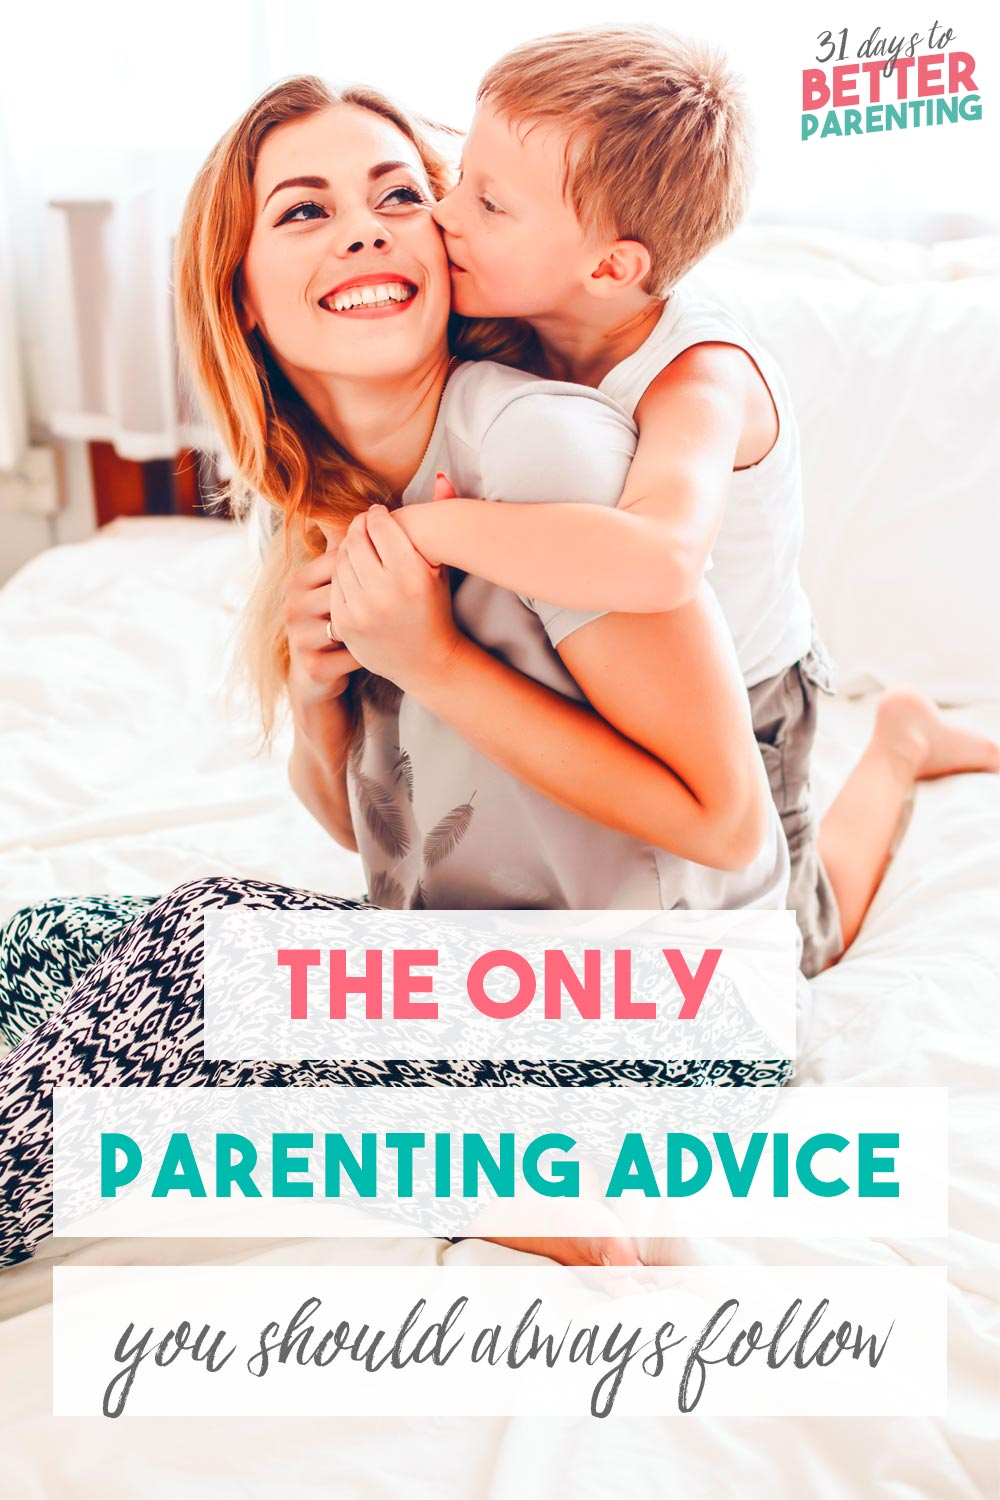 We hear a ton of advice on how to raise kids. But want to know the only parenting advice you should listen to, the one you should always follow? Find out in this article.